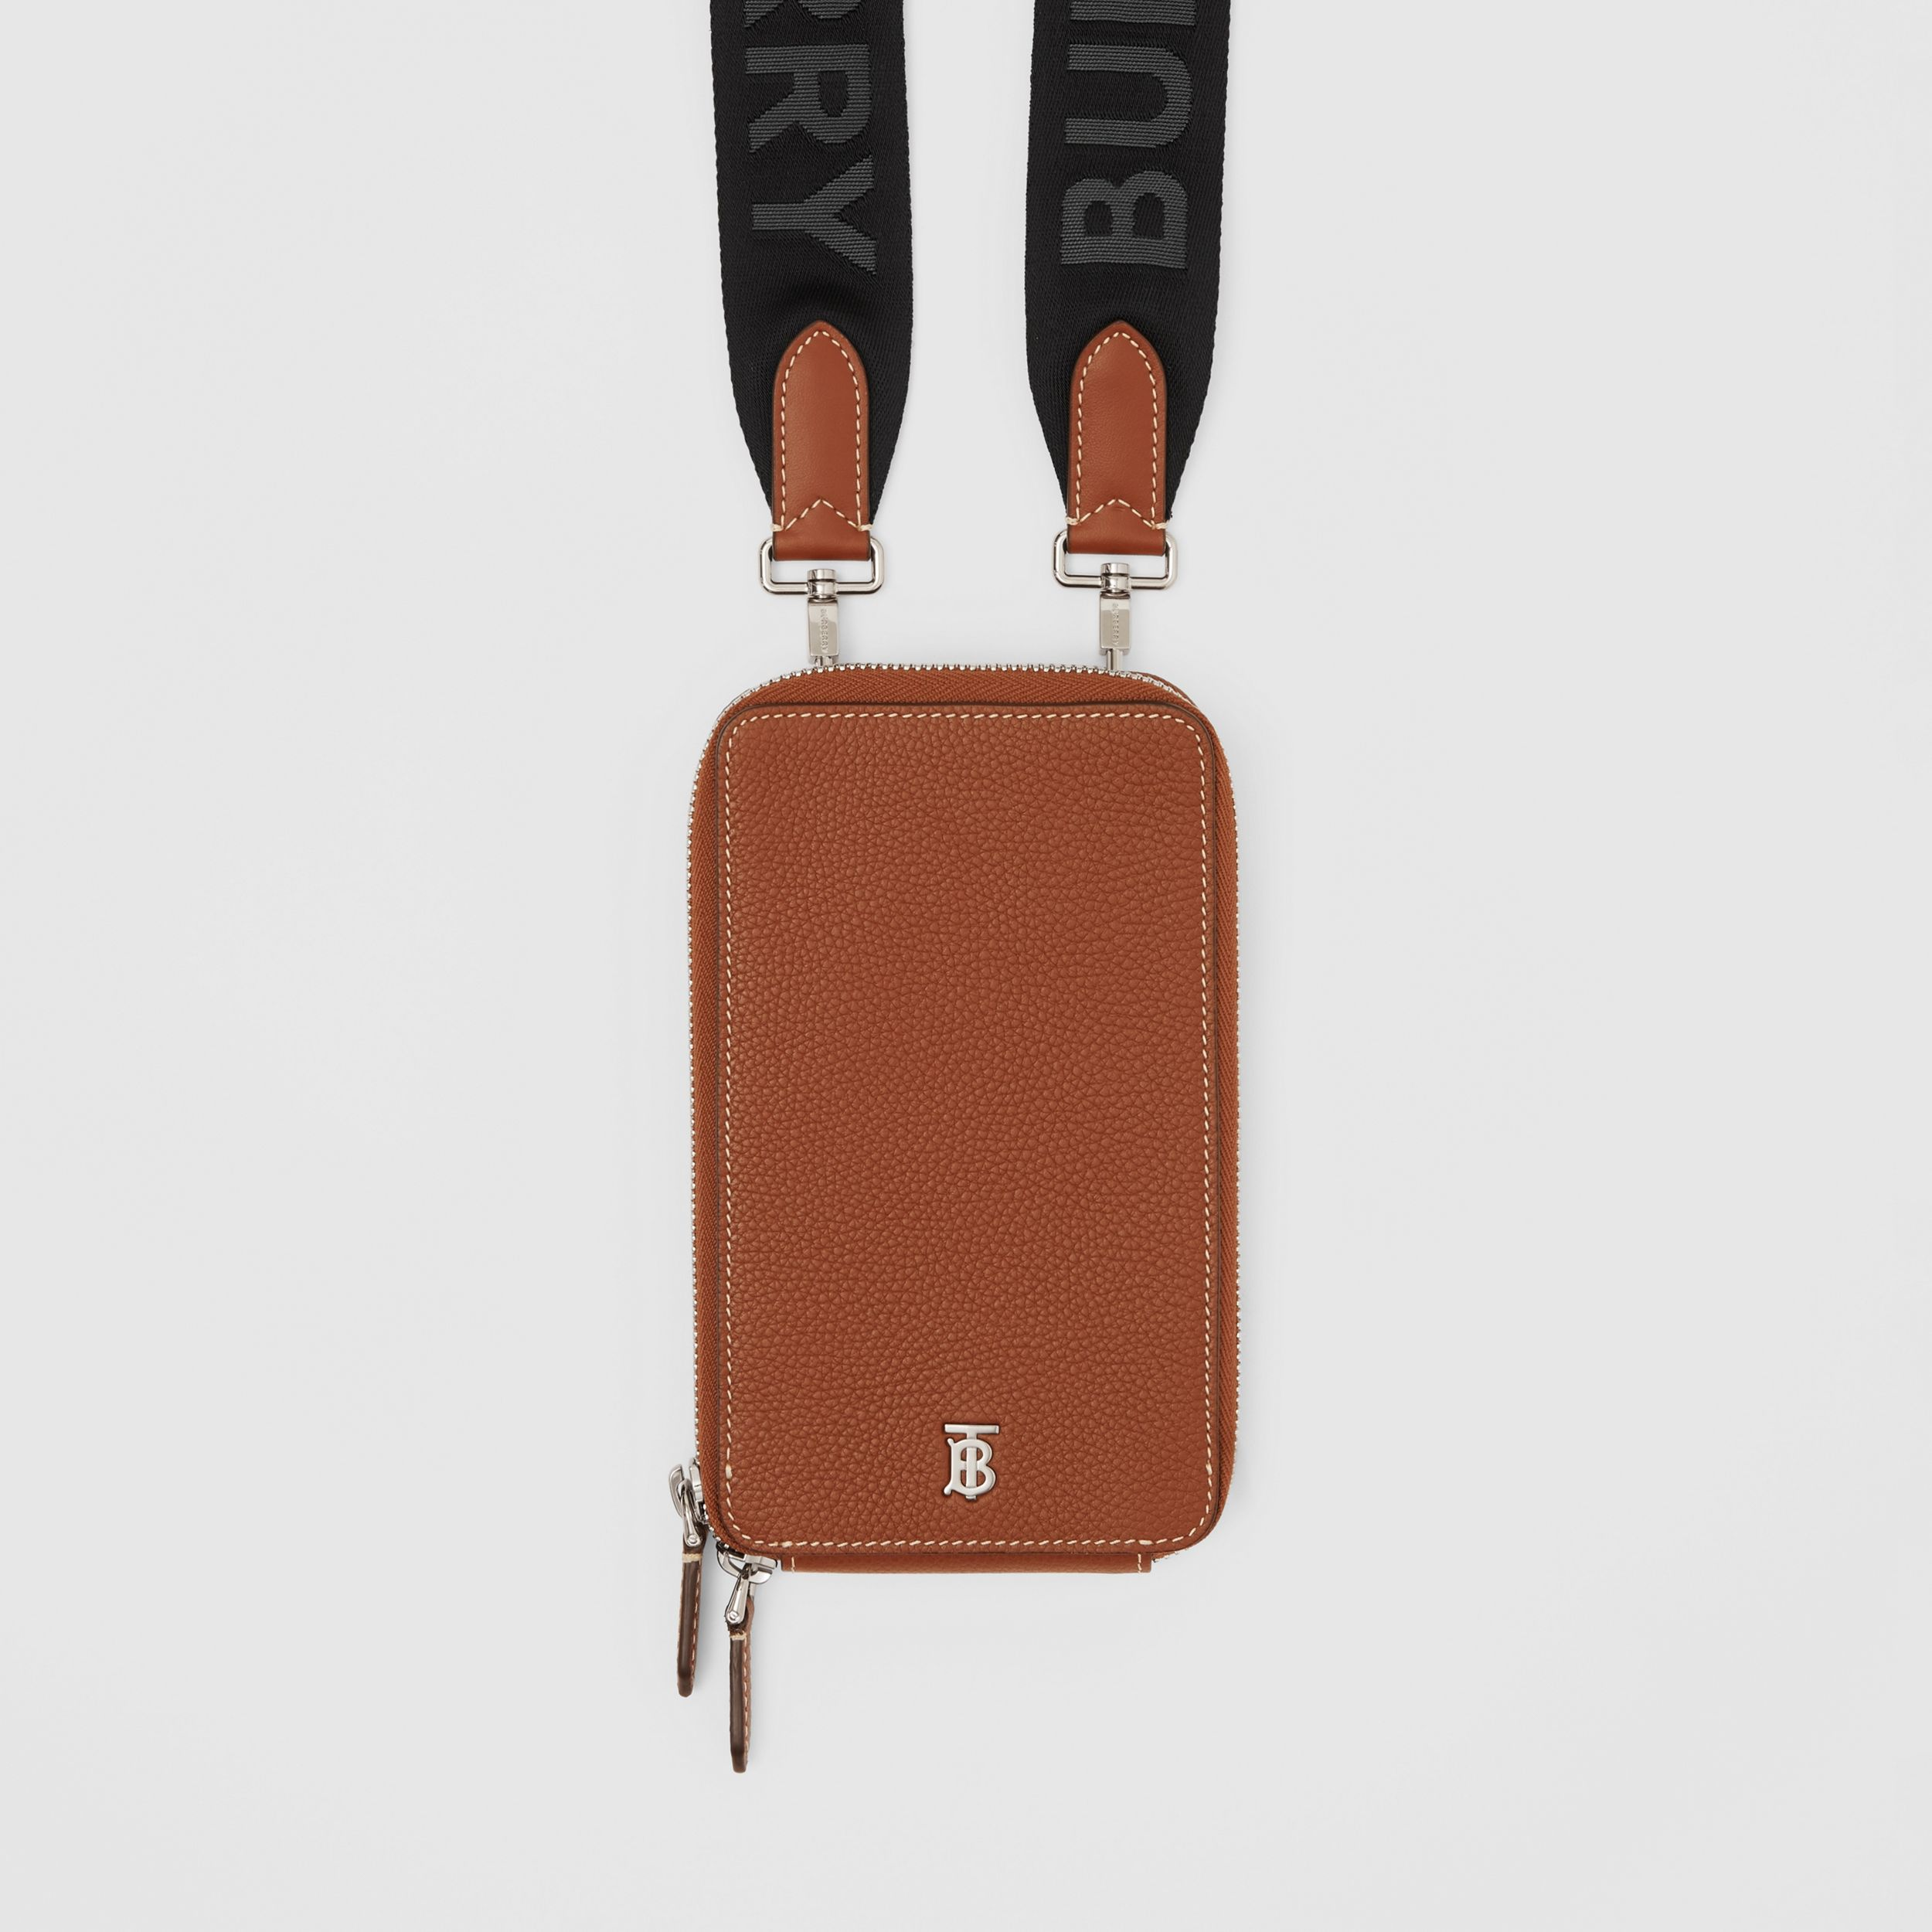 Grainy Leather Phone Case with Detachable Strap in Tan - Men | Burberry Canada - 2